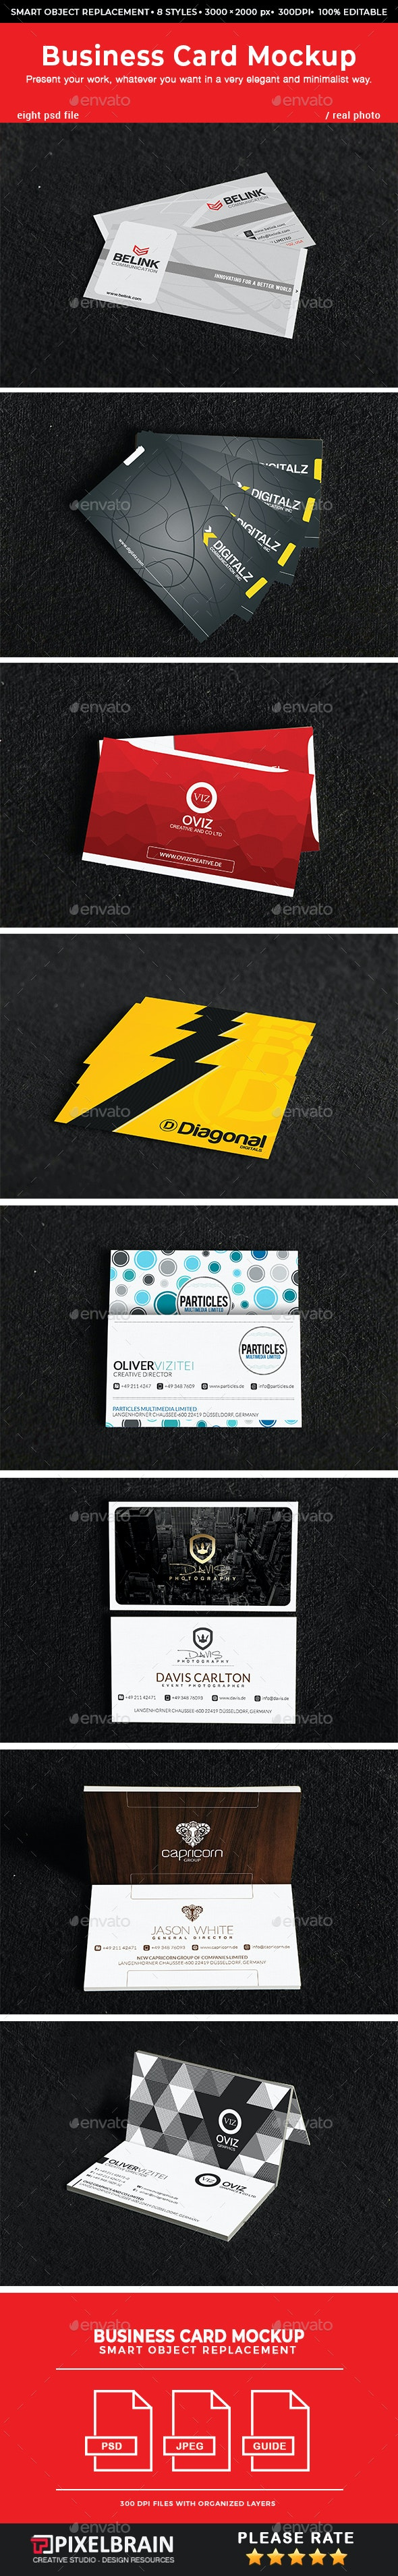 Realistic Business Card Mockups Vol. 3 - Business Cards Print